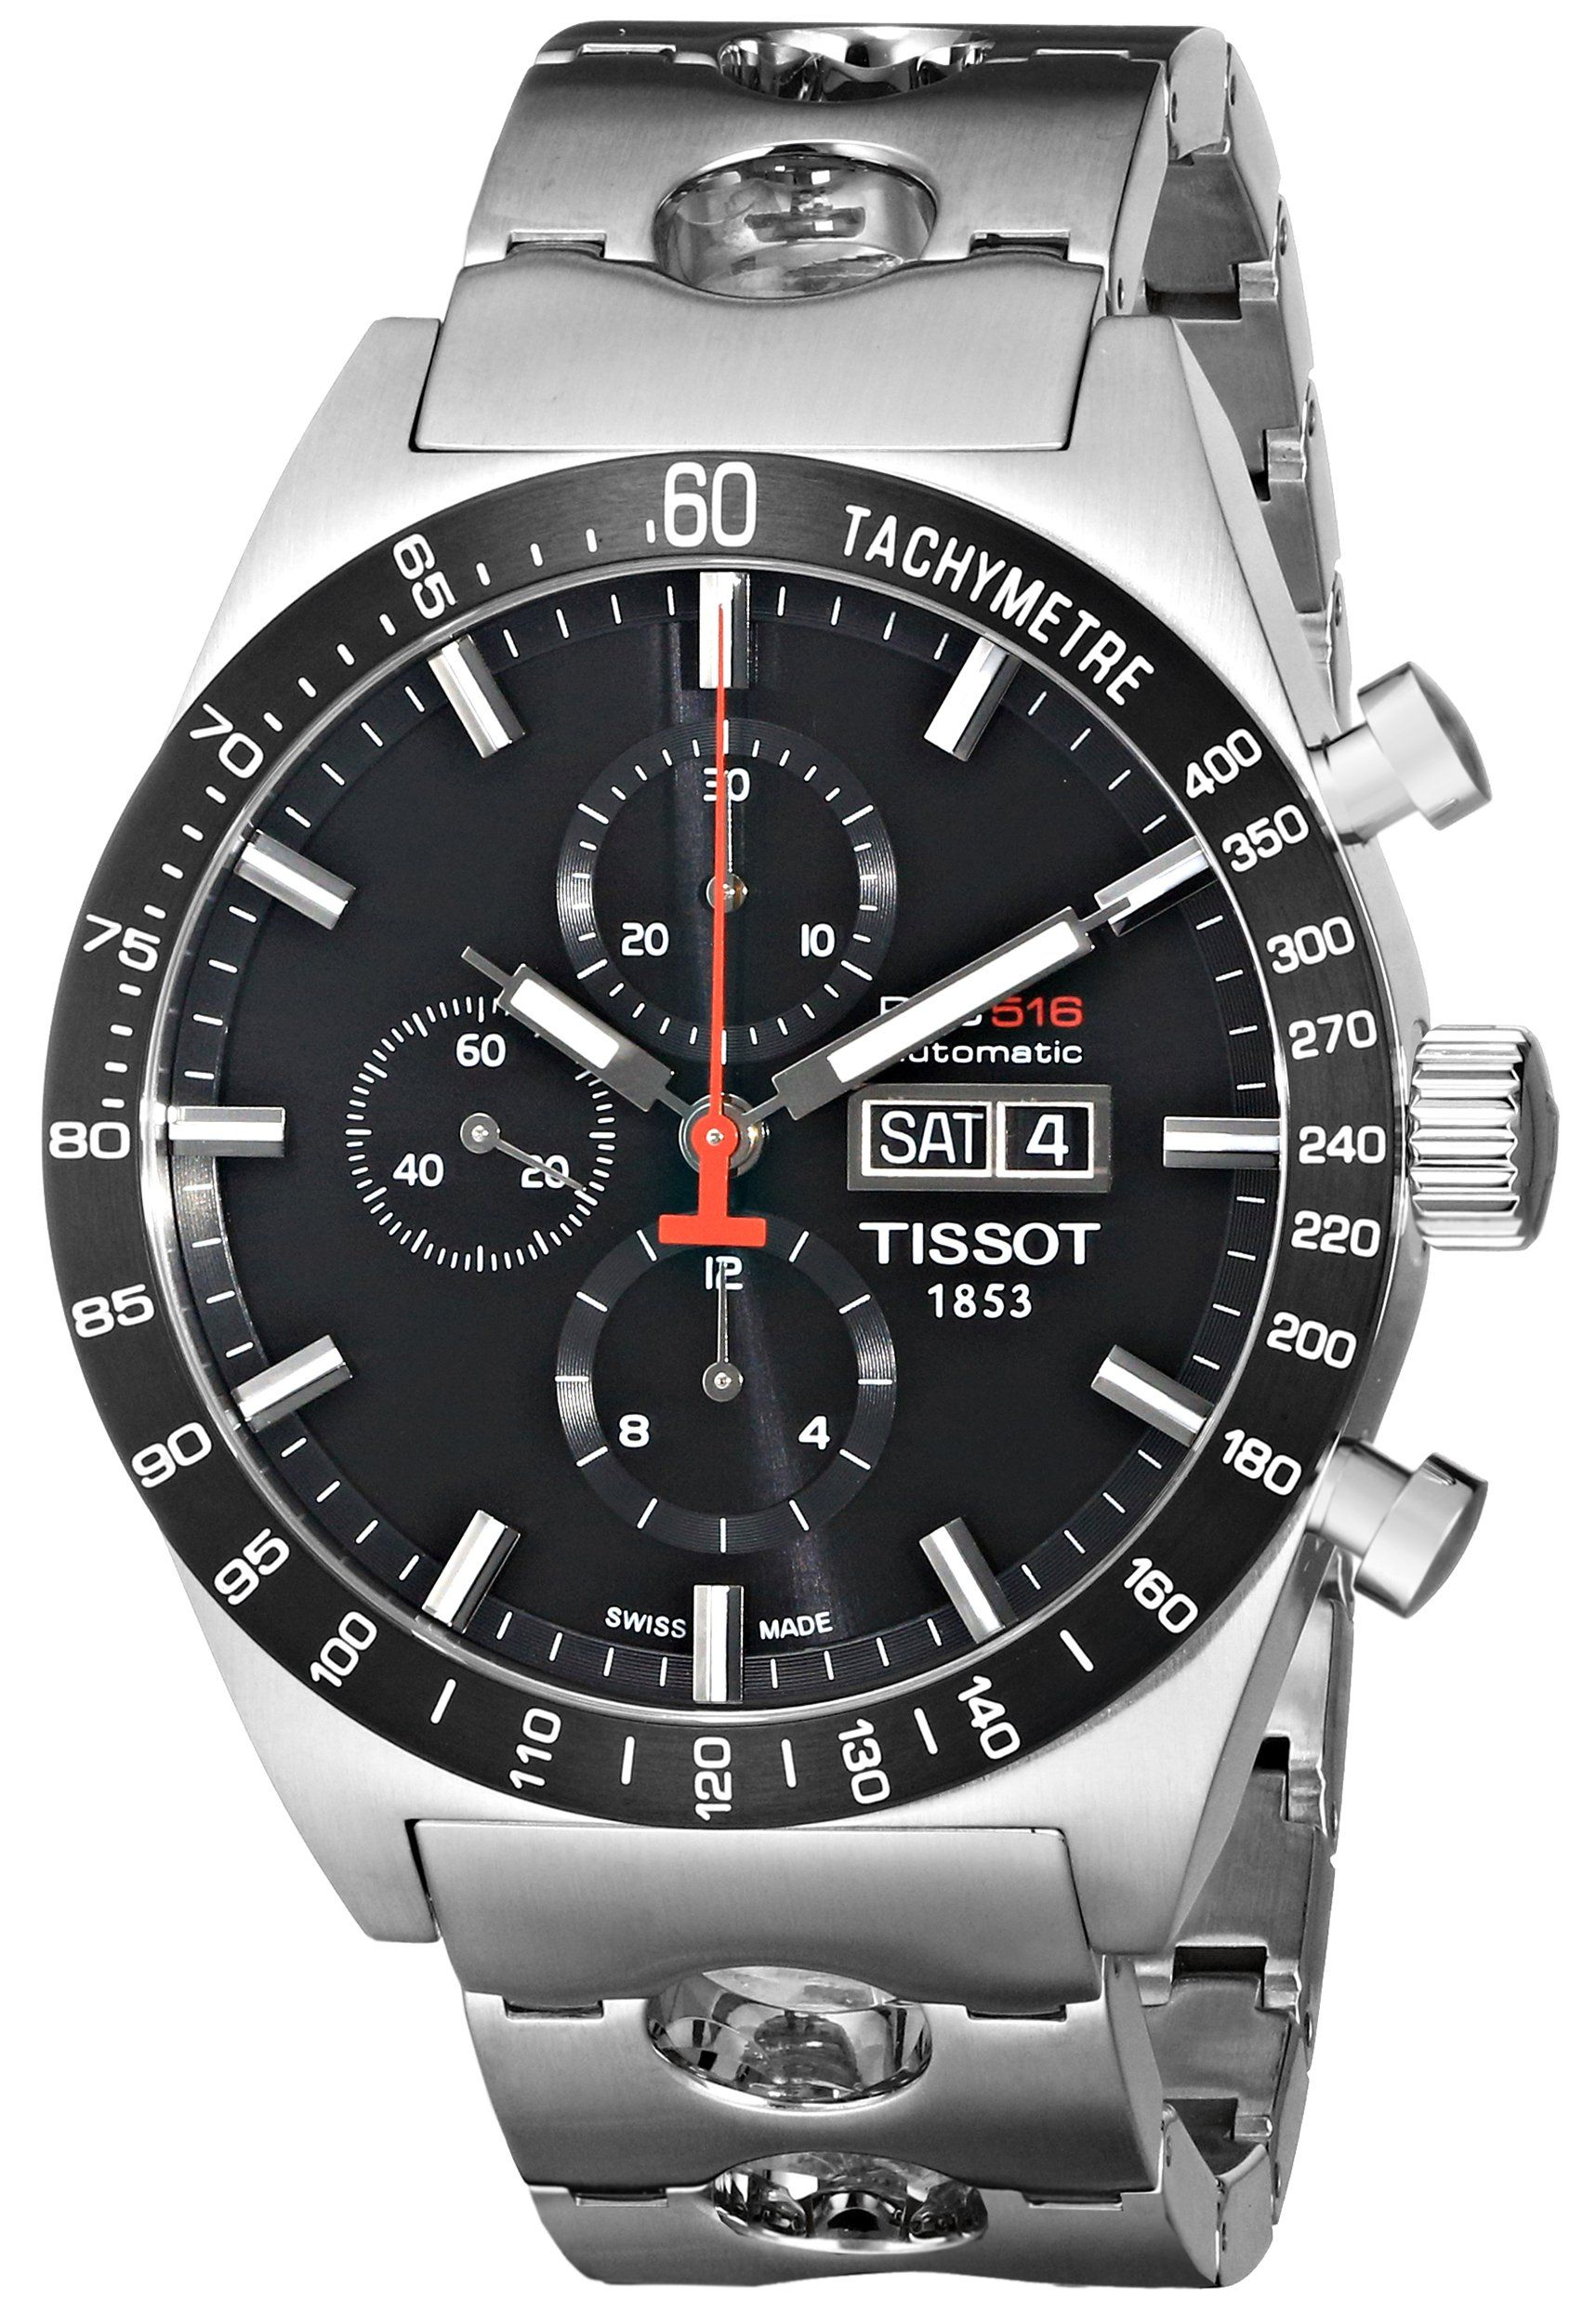 69dd405a5ba Amazon.com  Tissot Men s T0446142105100 T-Sport PRS516 Automatic Black Day  Date Dial Watch  Tissot  Watches